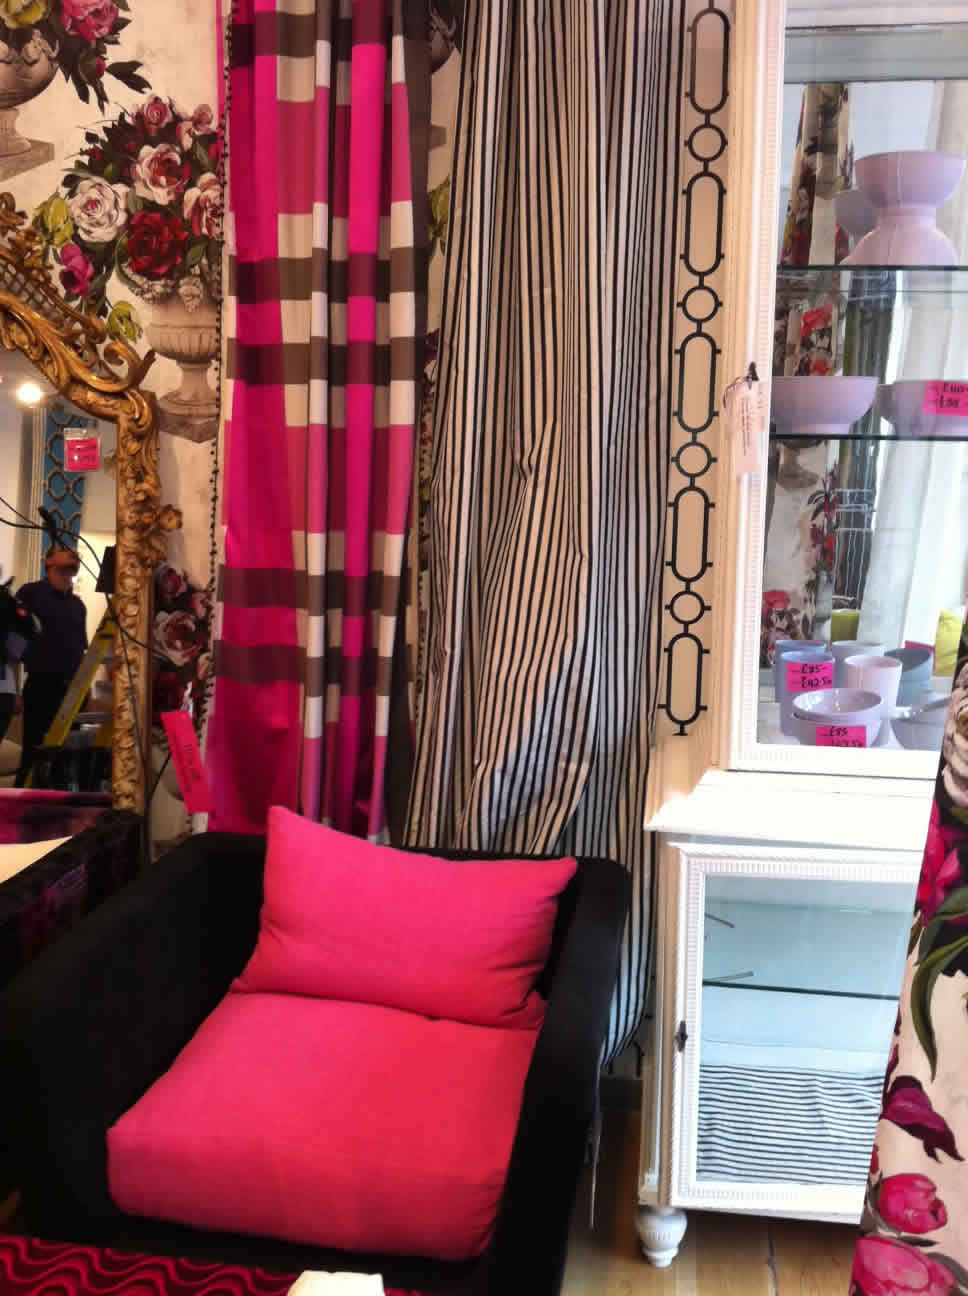 back-and-pink-interior-design